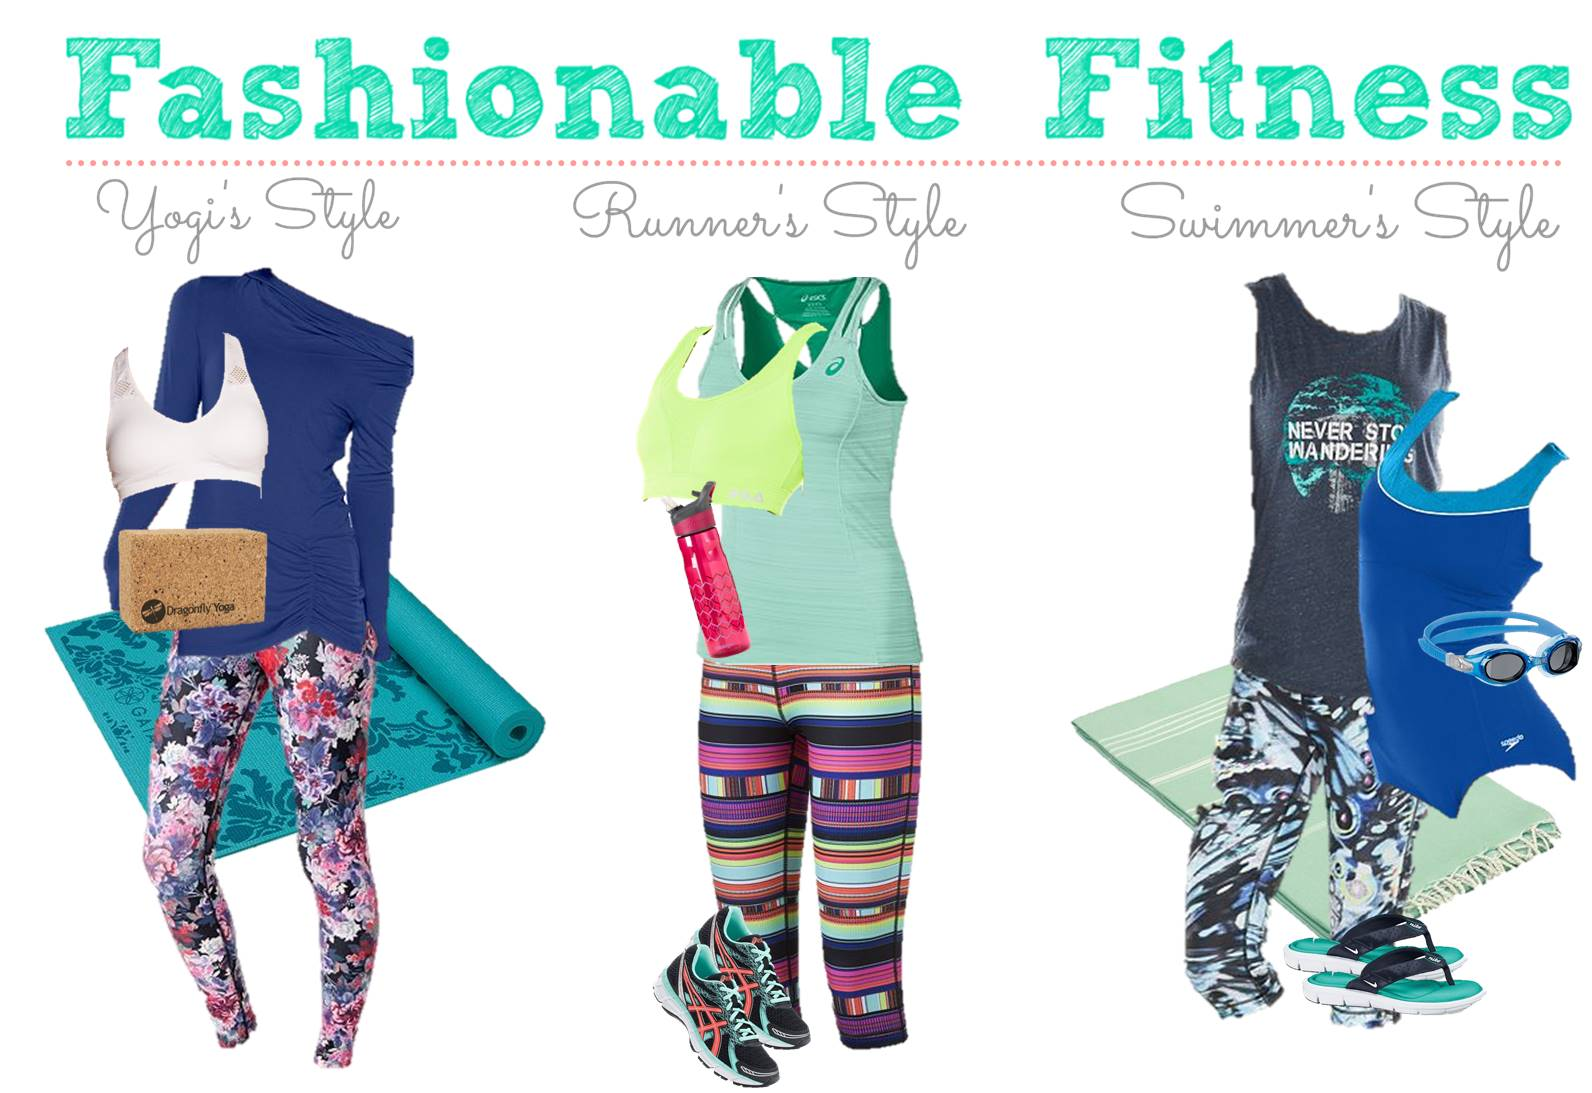 5.21 Fashionable Fitness Board ALL STYLES